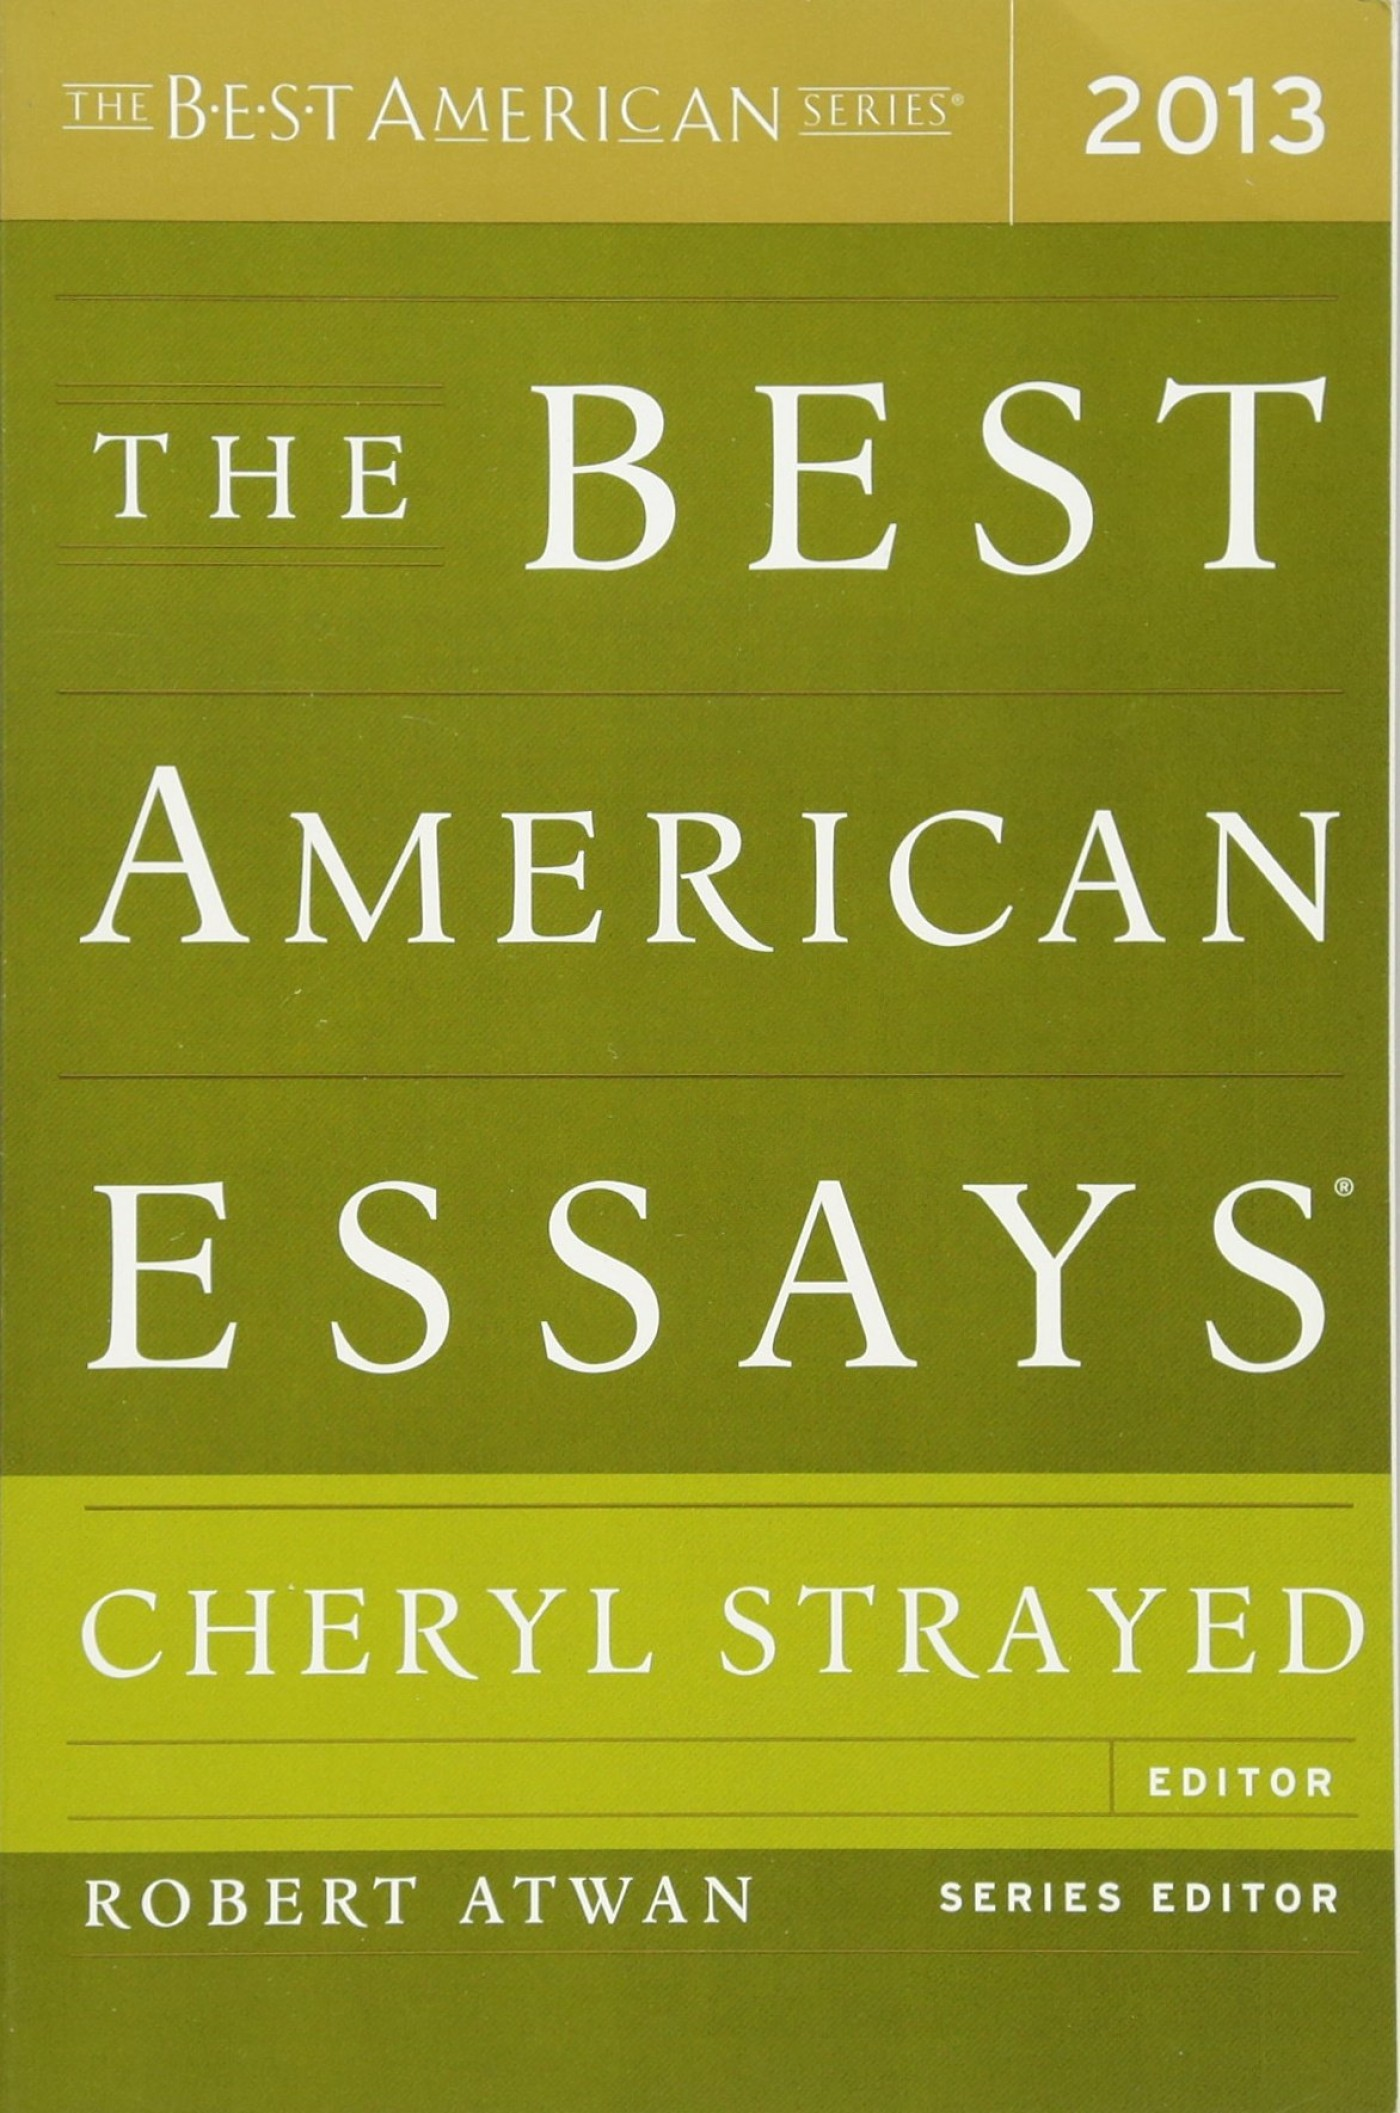 003 Essay Example The Best American Essays Phenomenal 2016 Pdf Download Audiobook Sparknotes 1400